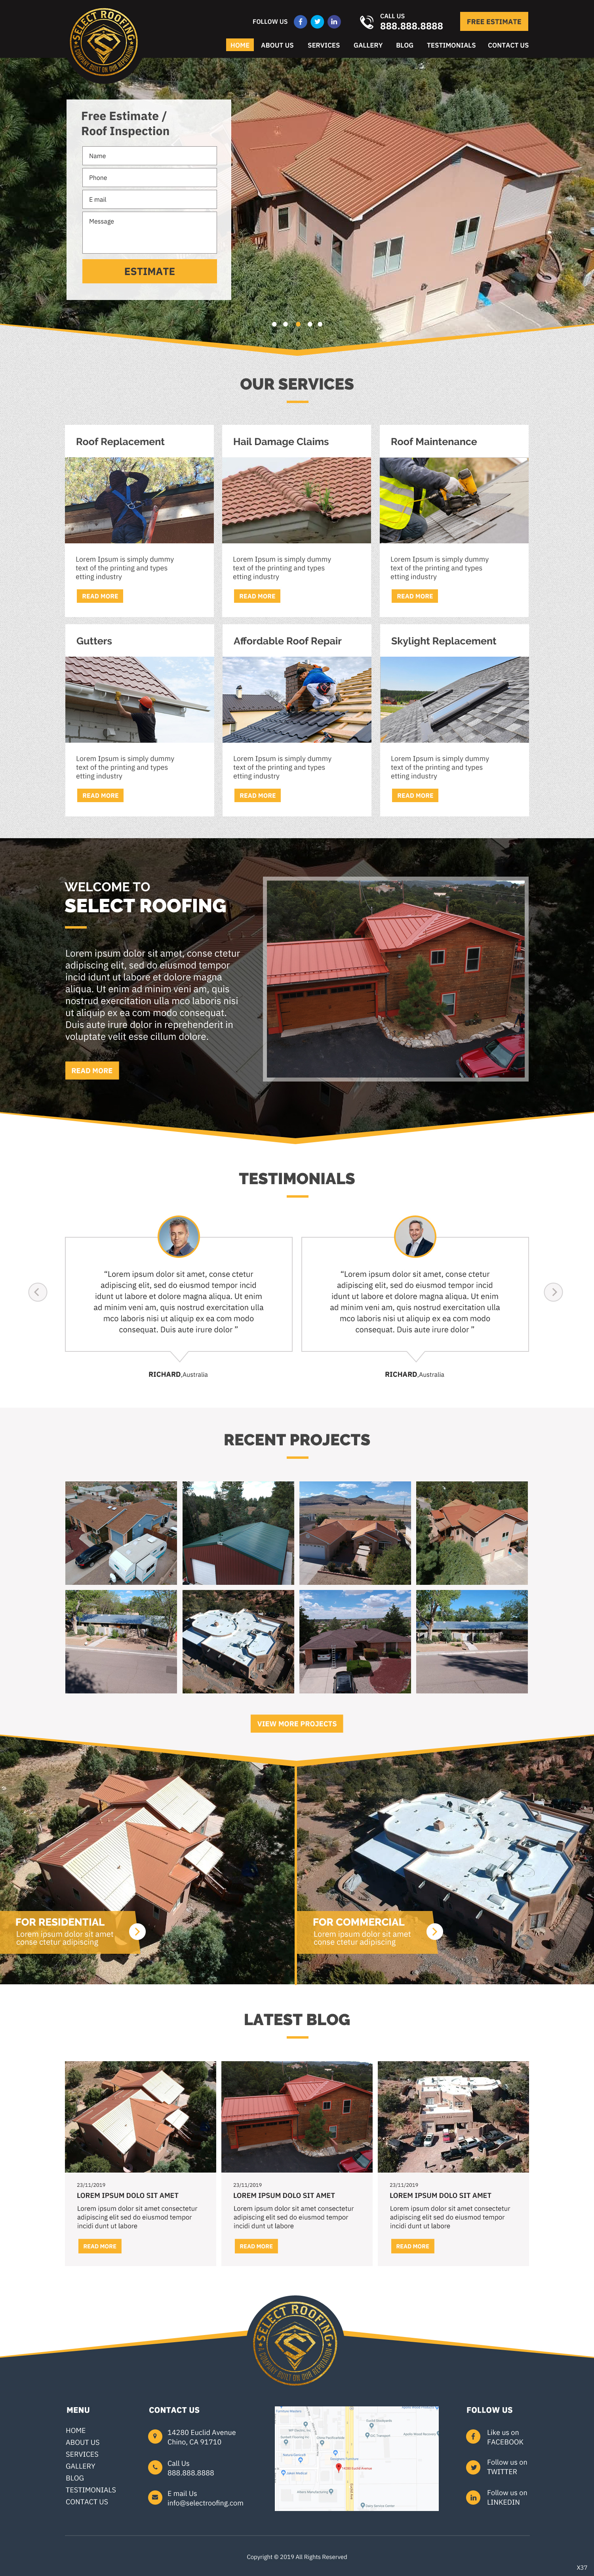 Winning Entry #22 for Website Design contest - Select Roofing - original